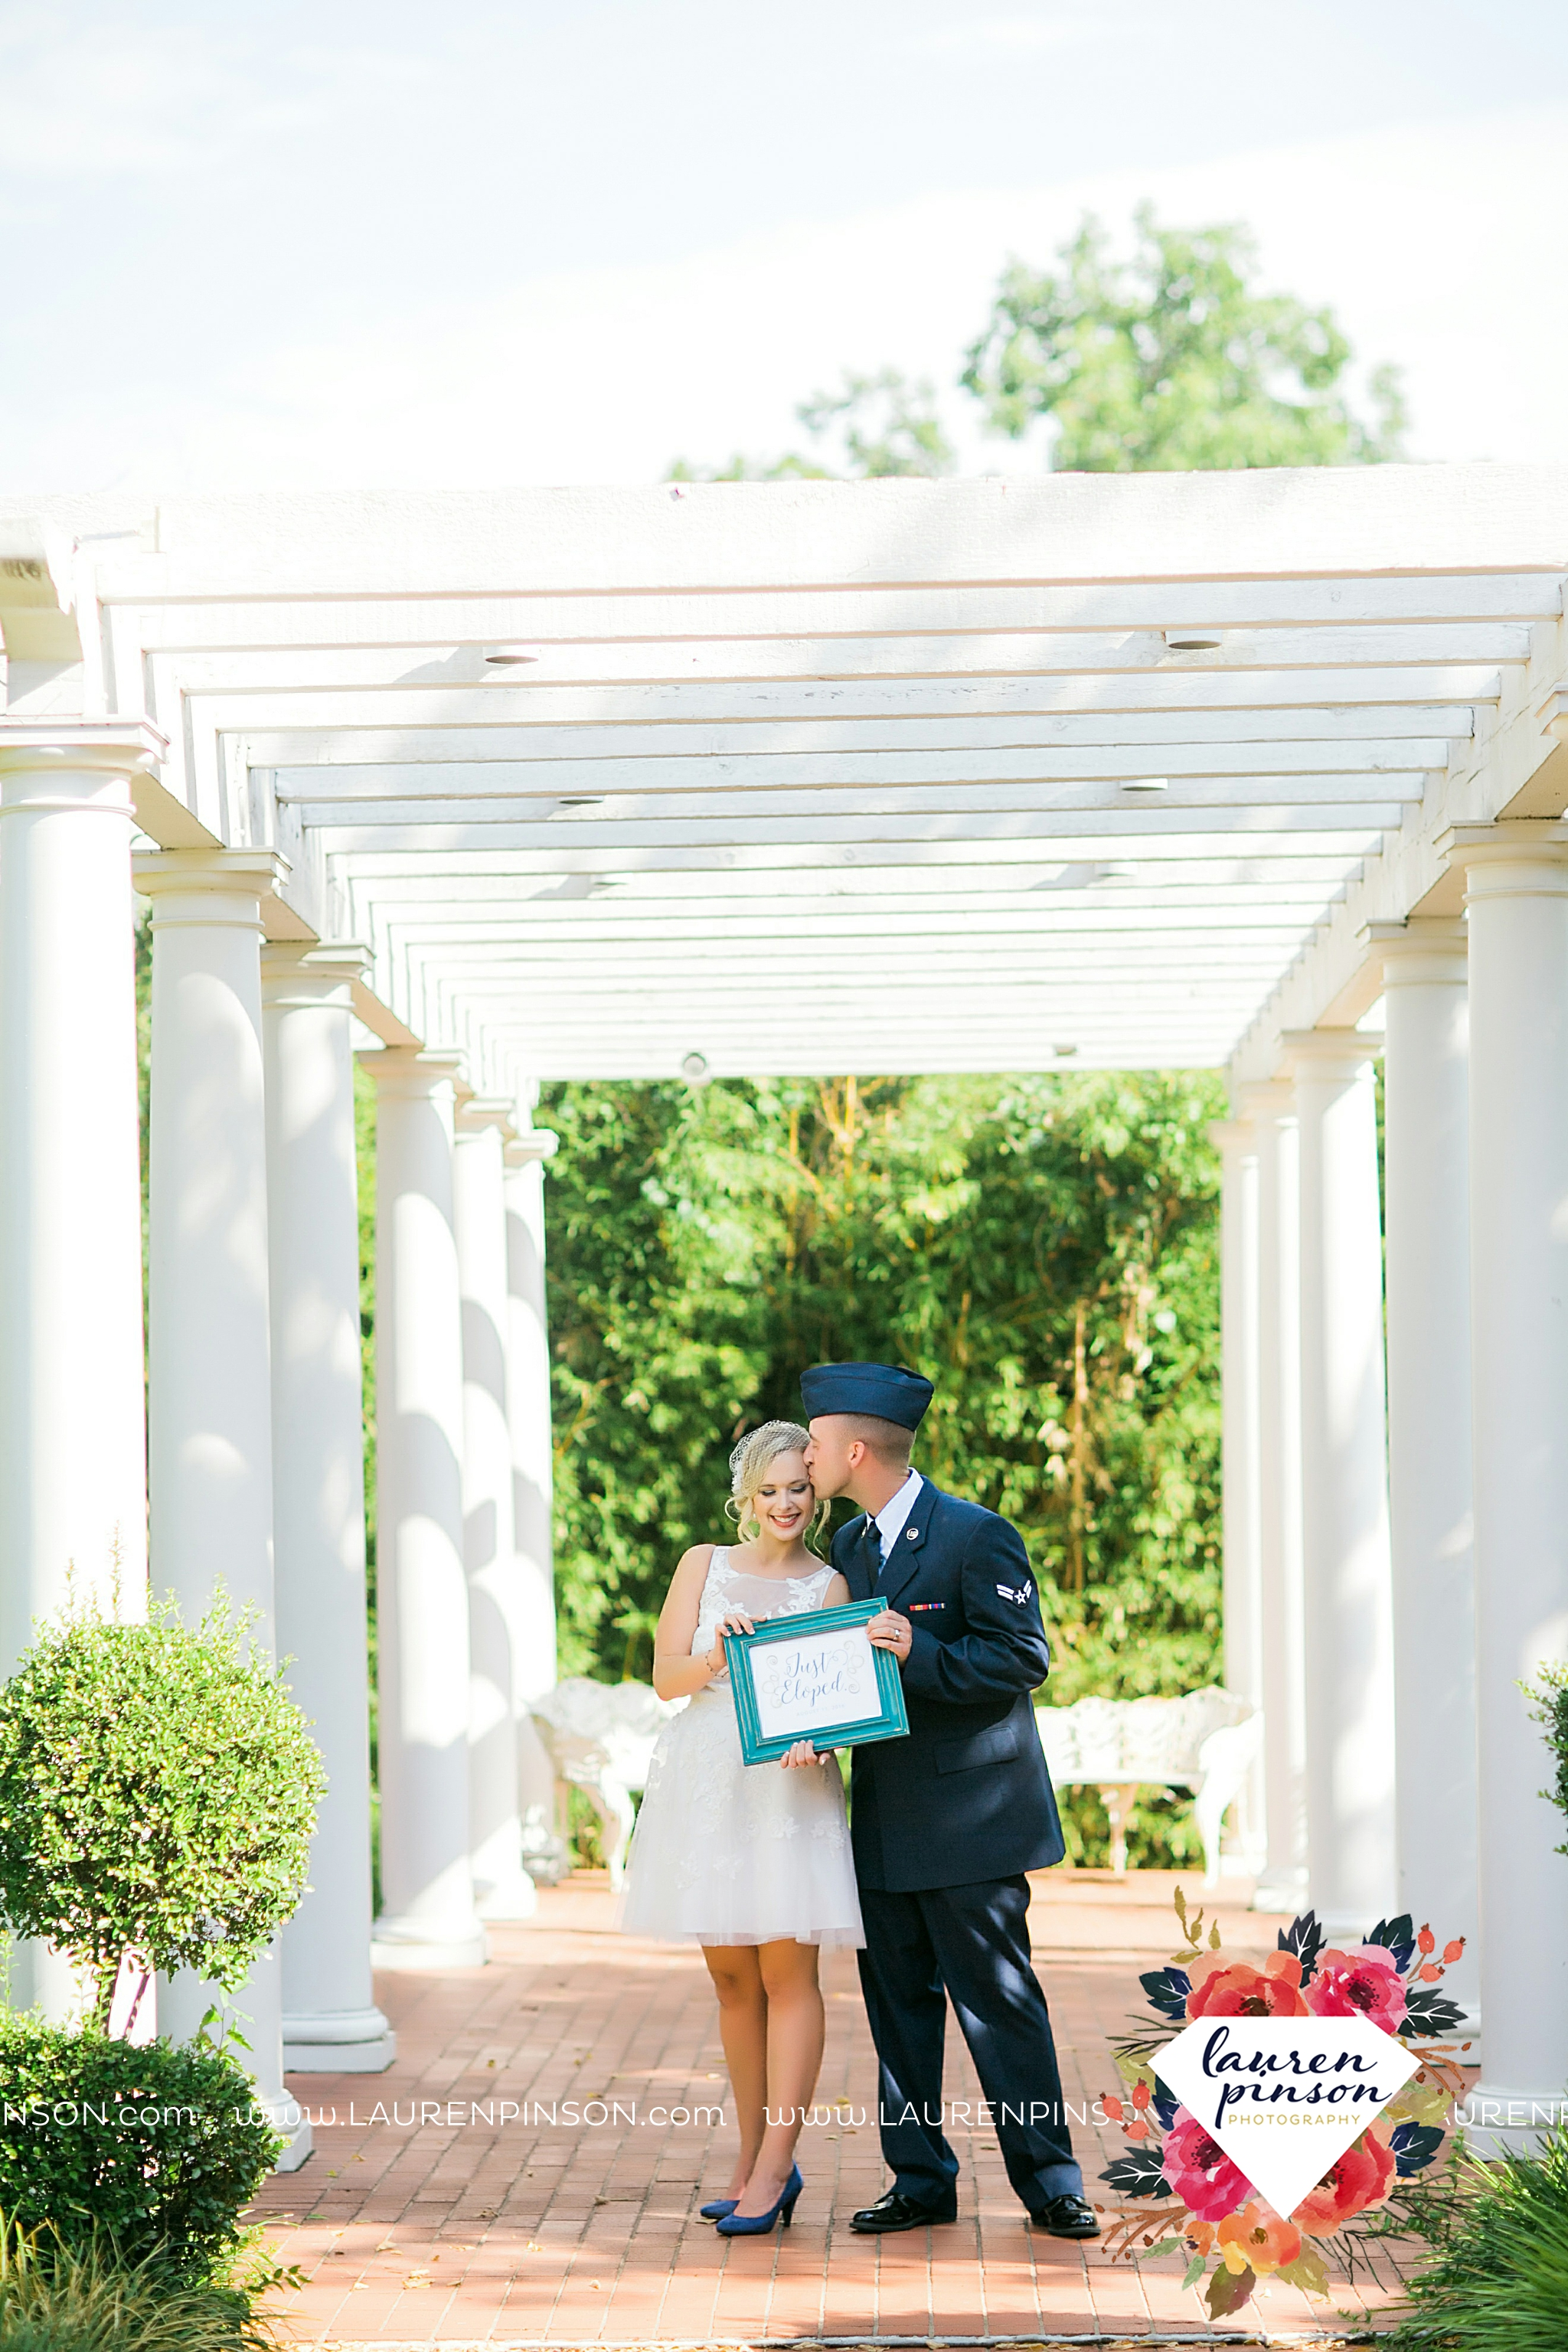 sheppard-afb-wichita-falls-texas-elopement-courthouse-wedding-photographer-justice-of-the-peace-judge-little-ceremony_3286.jpg